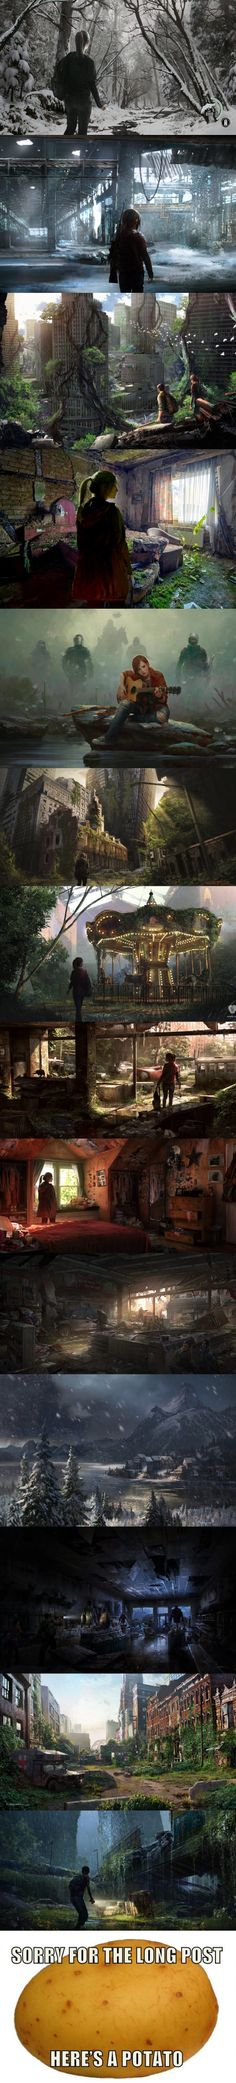 The Last of Us fan art